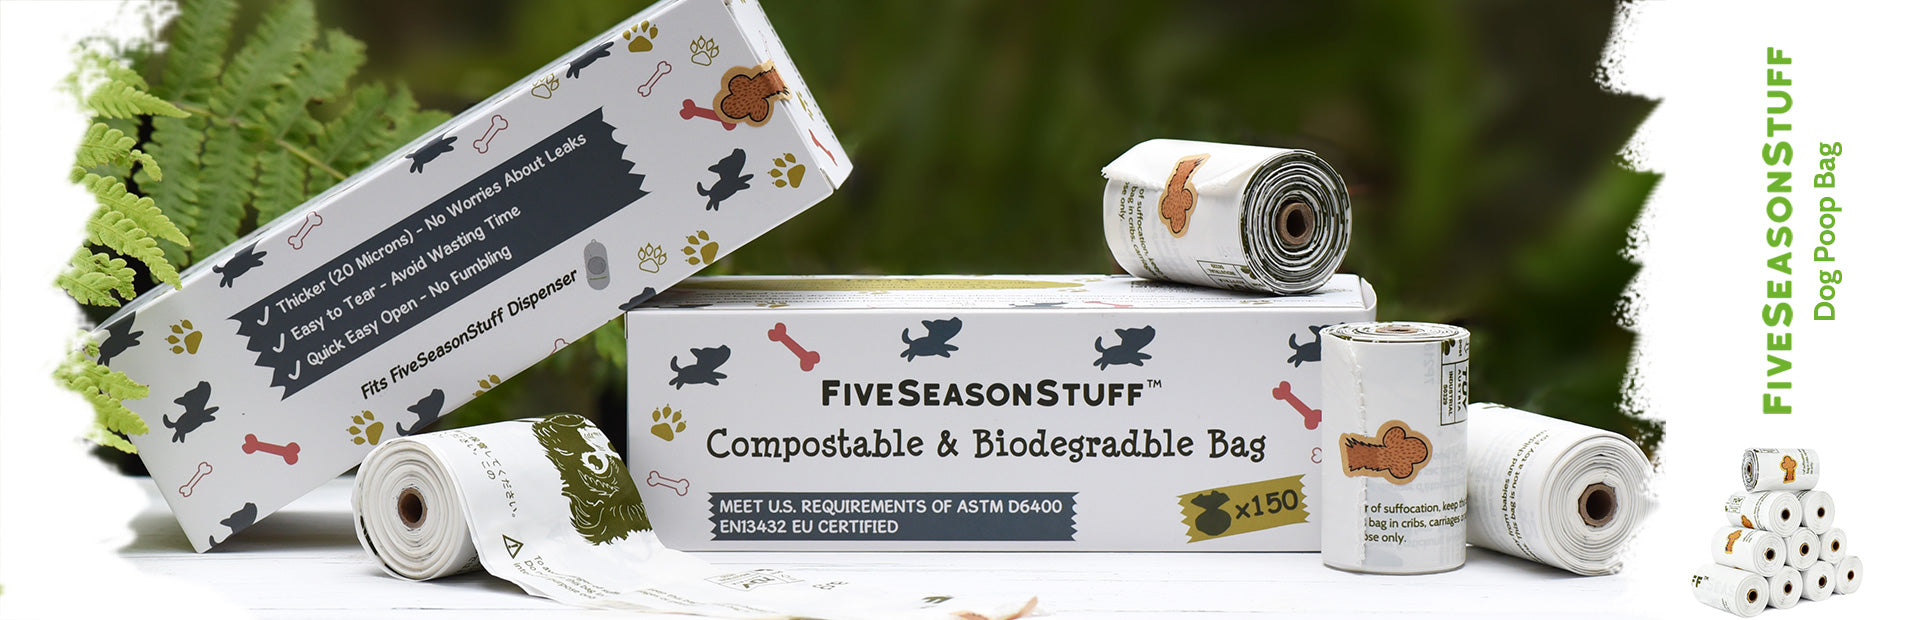 files/fiveseasonstuff-waste-bag-banner.jpg